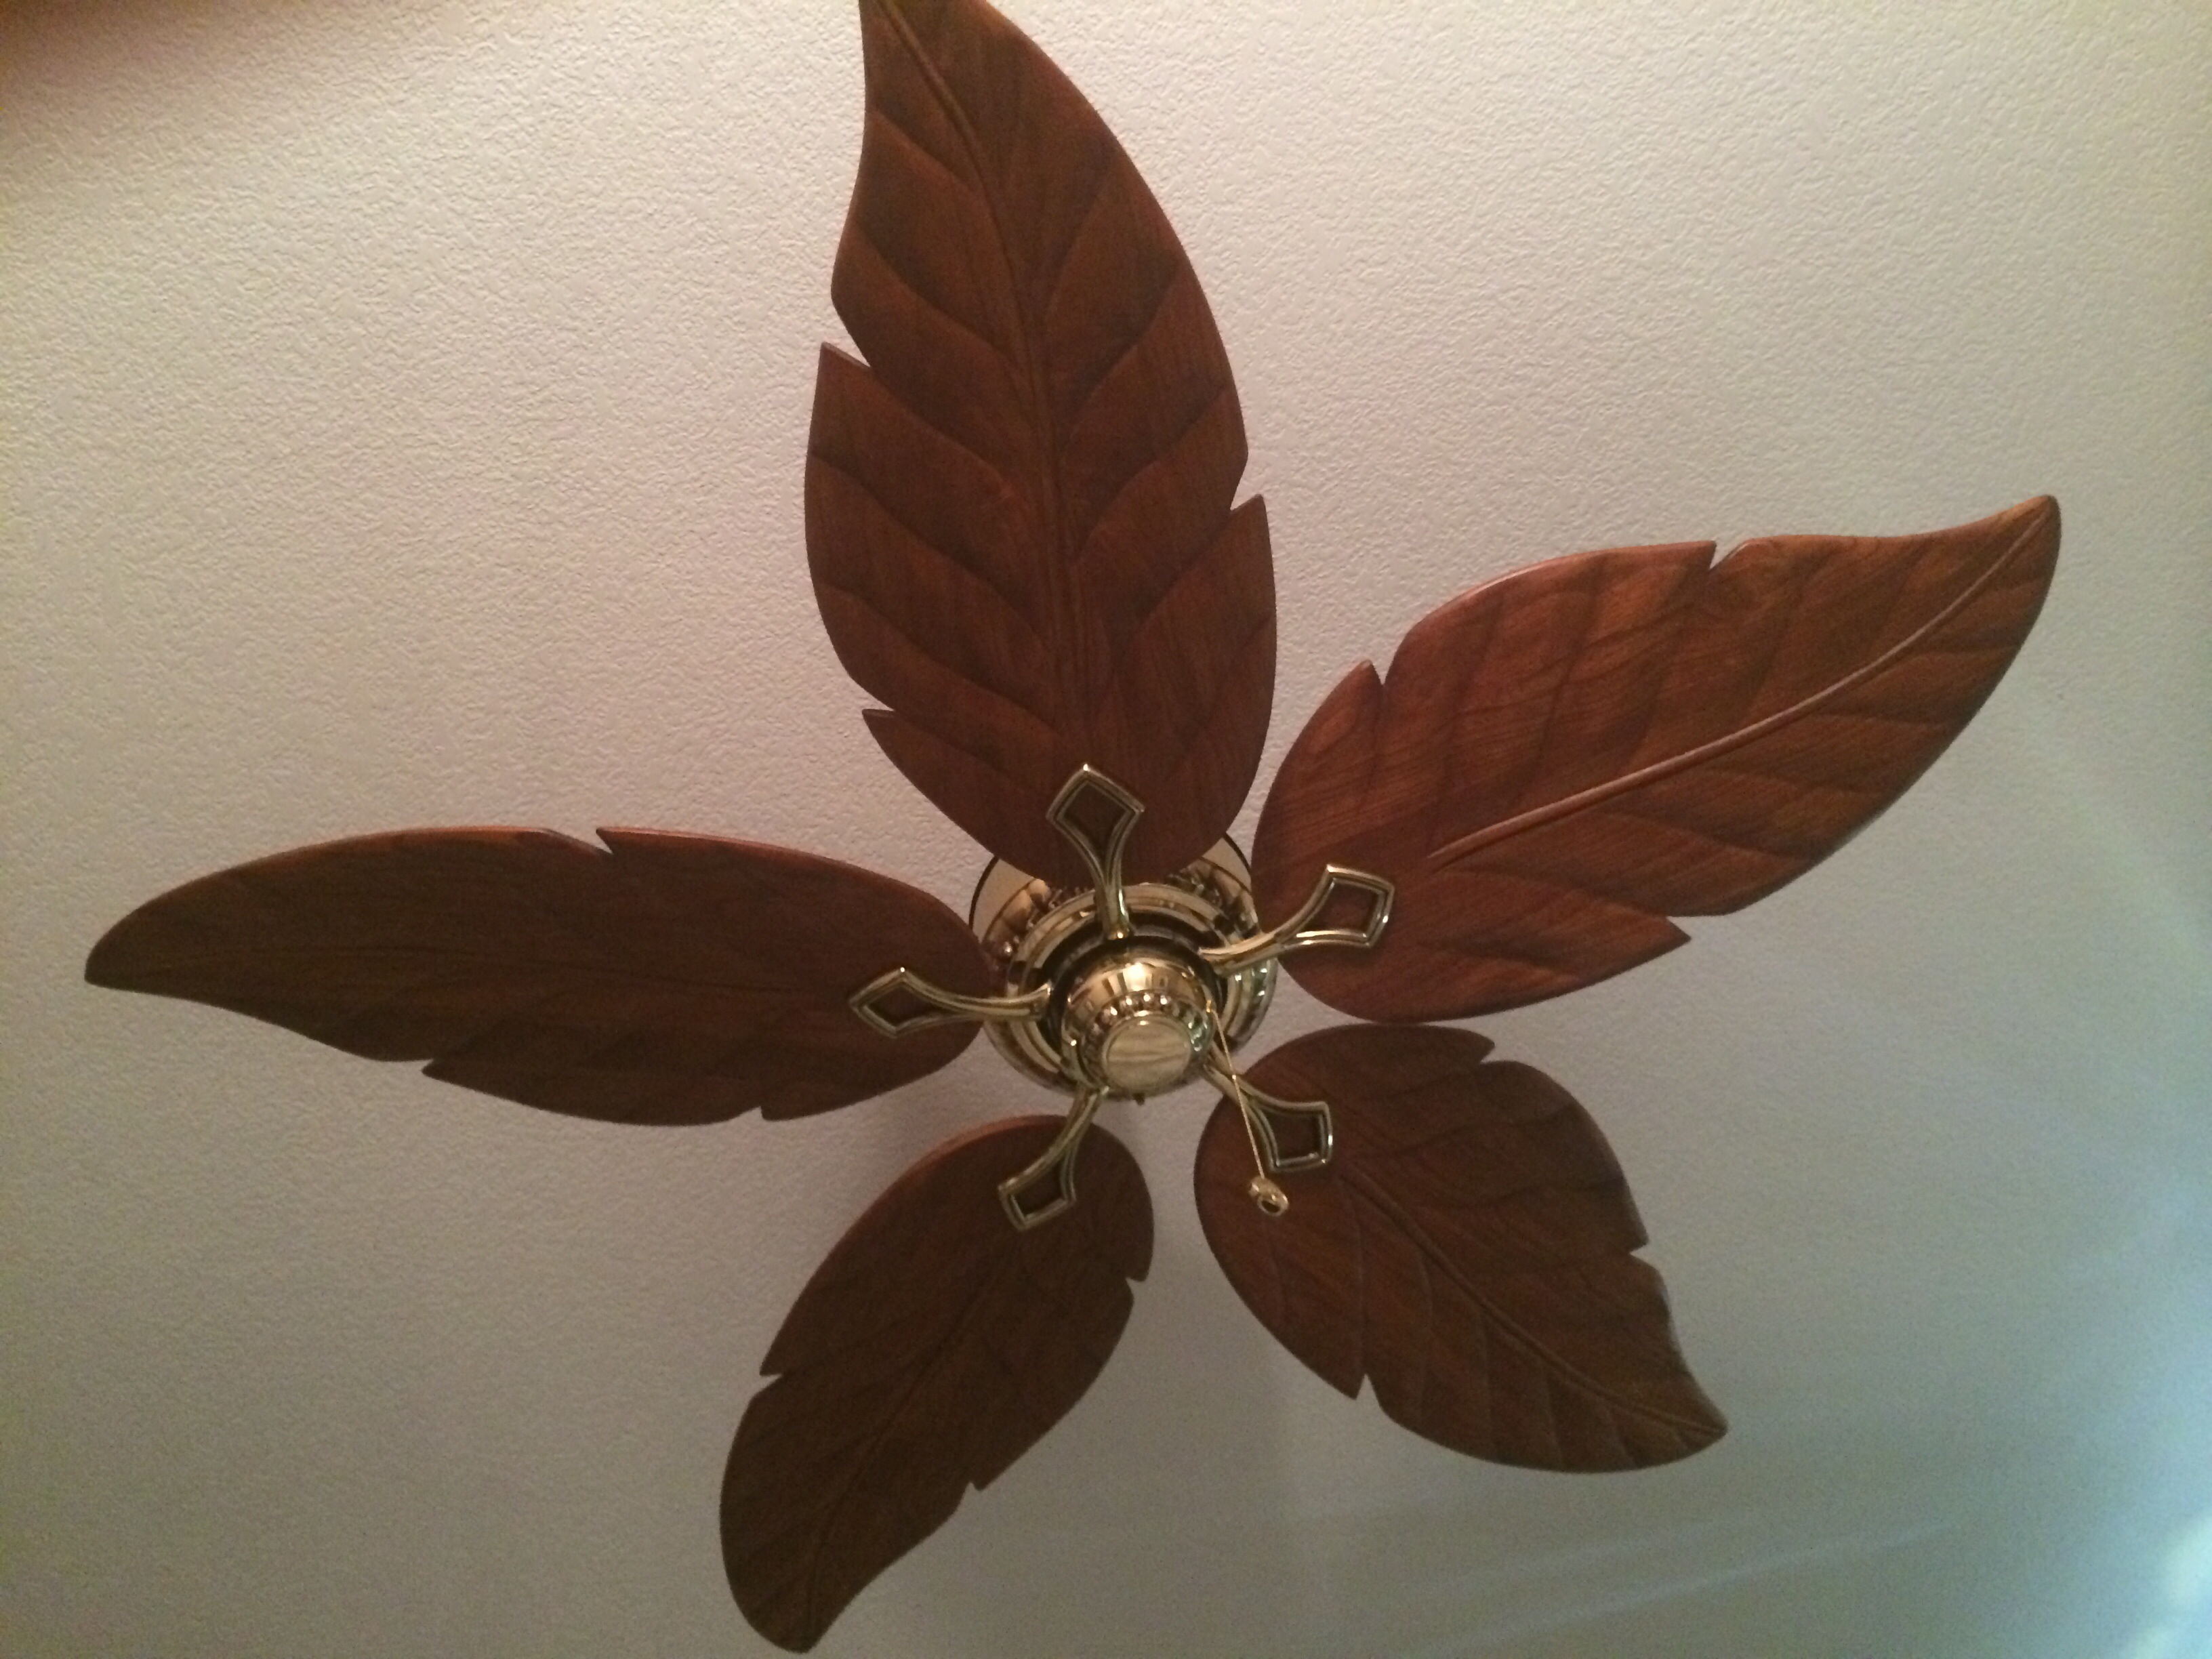 Life love and ceiling fans nova cadamatre 20140527 093132g aloadofball Choice Image